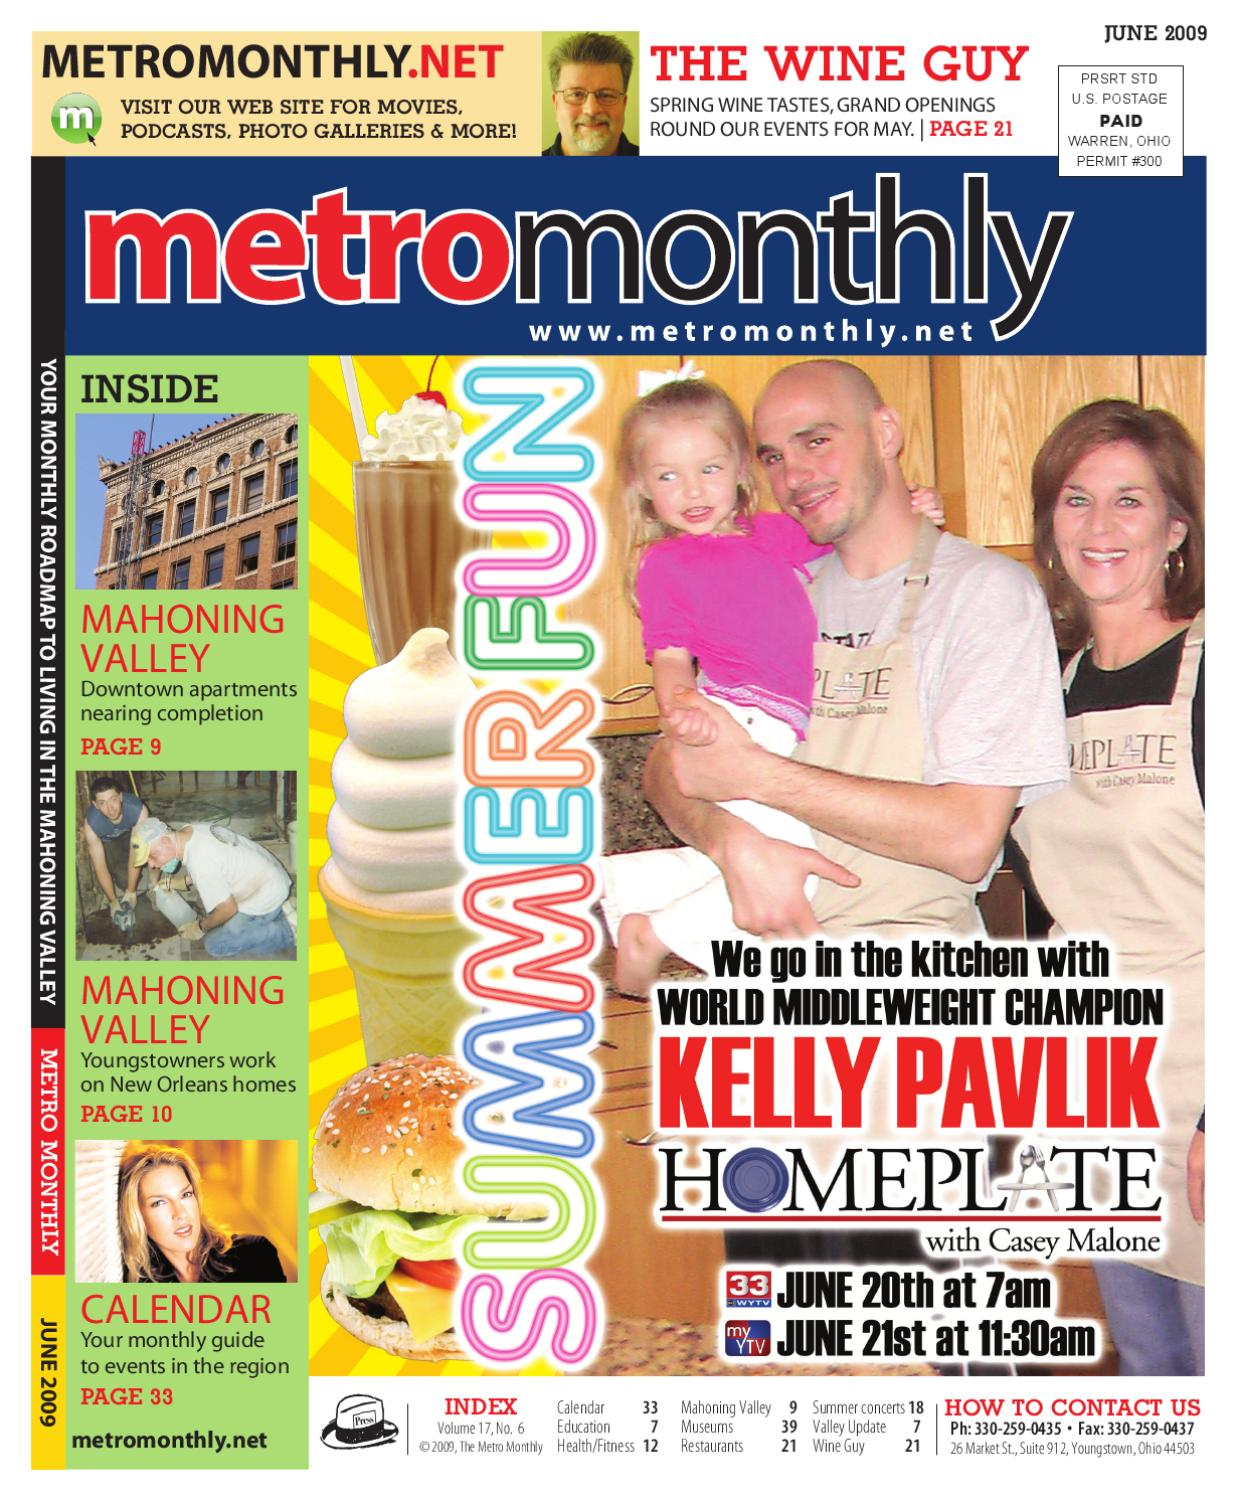 136048de9 Metro Monthly - JUN 2009 by Metro Monthly - issuu